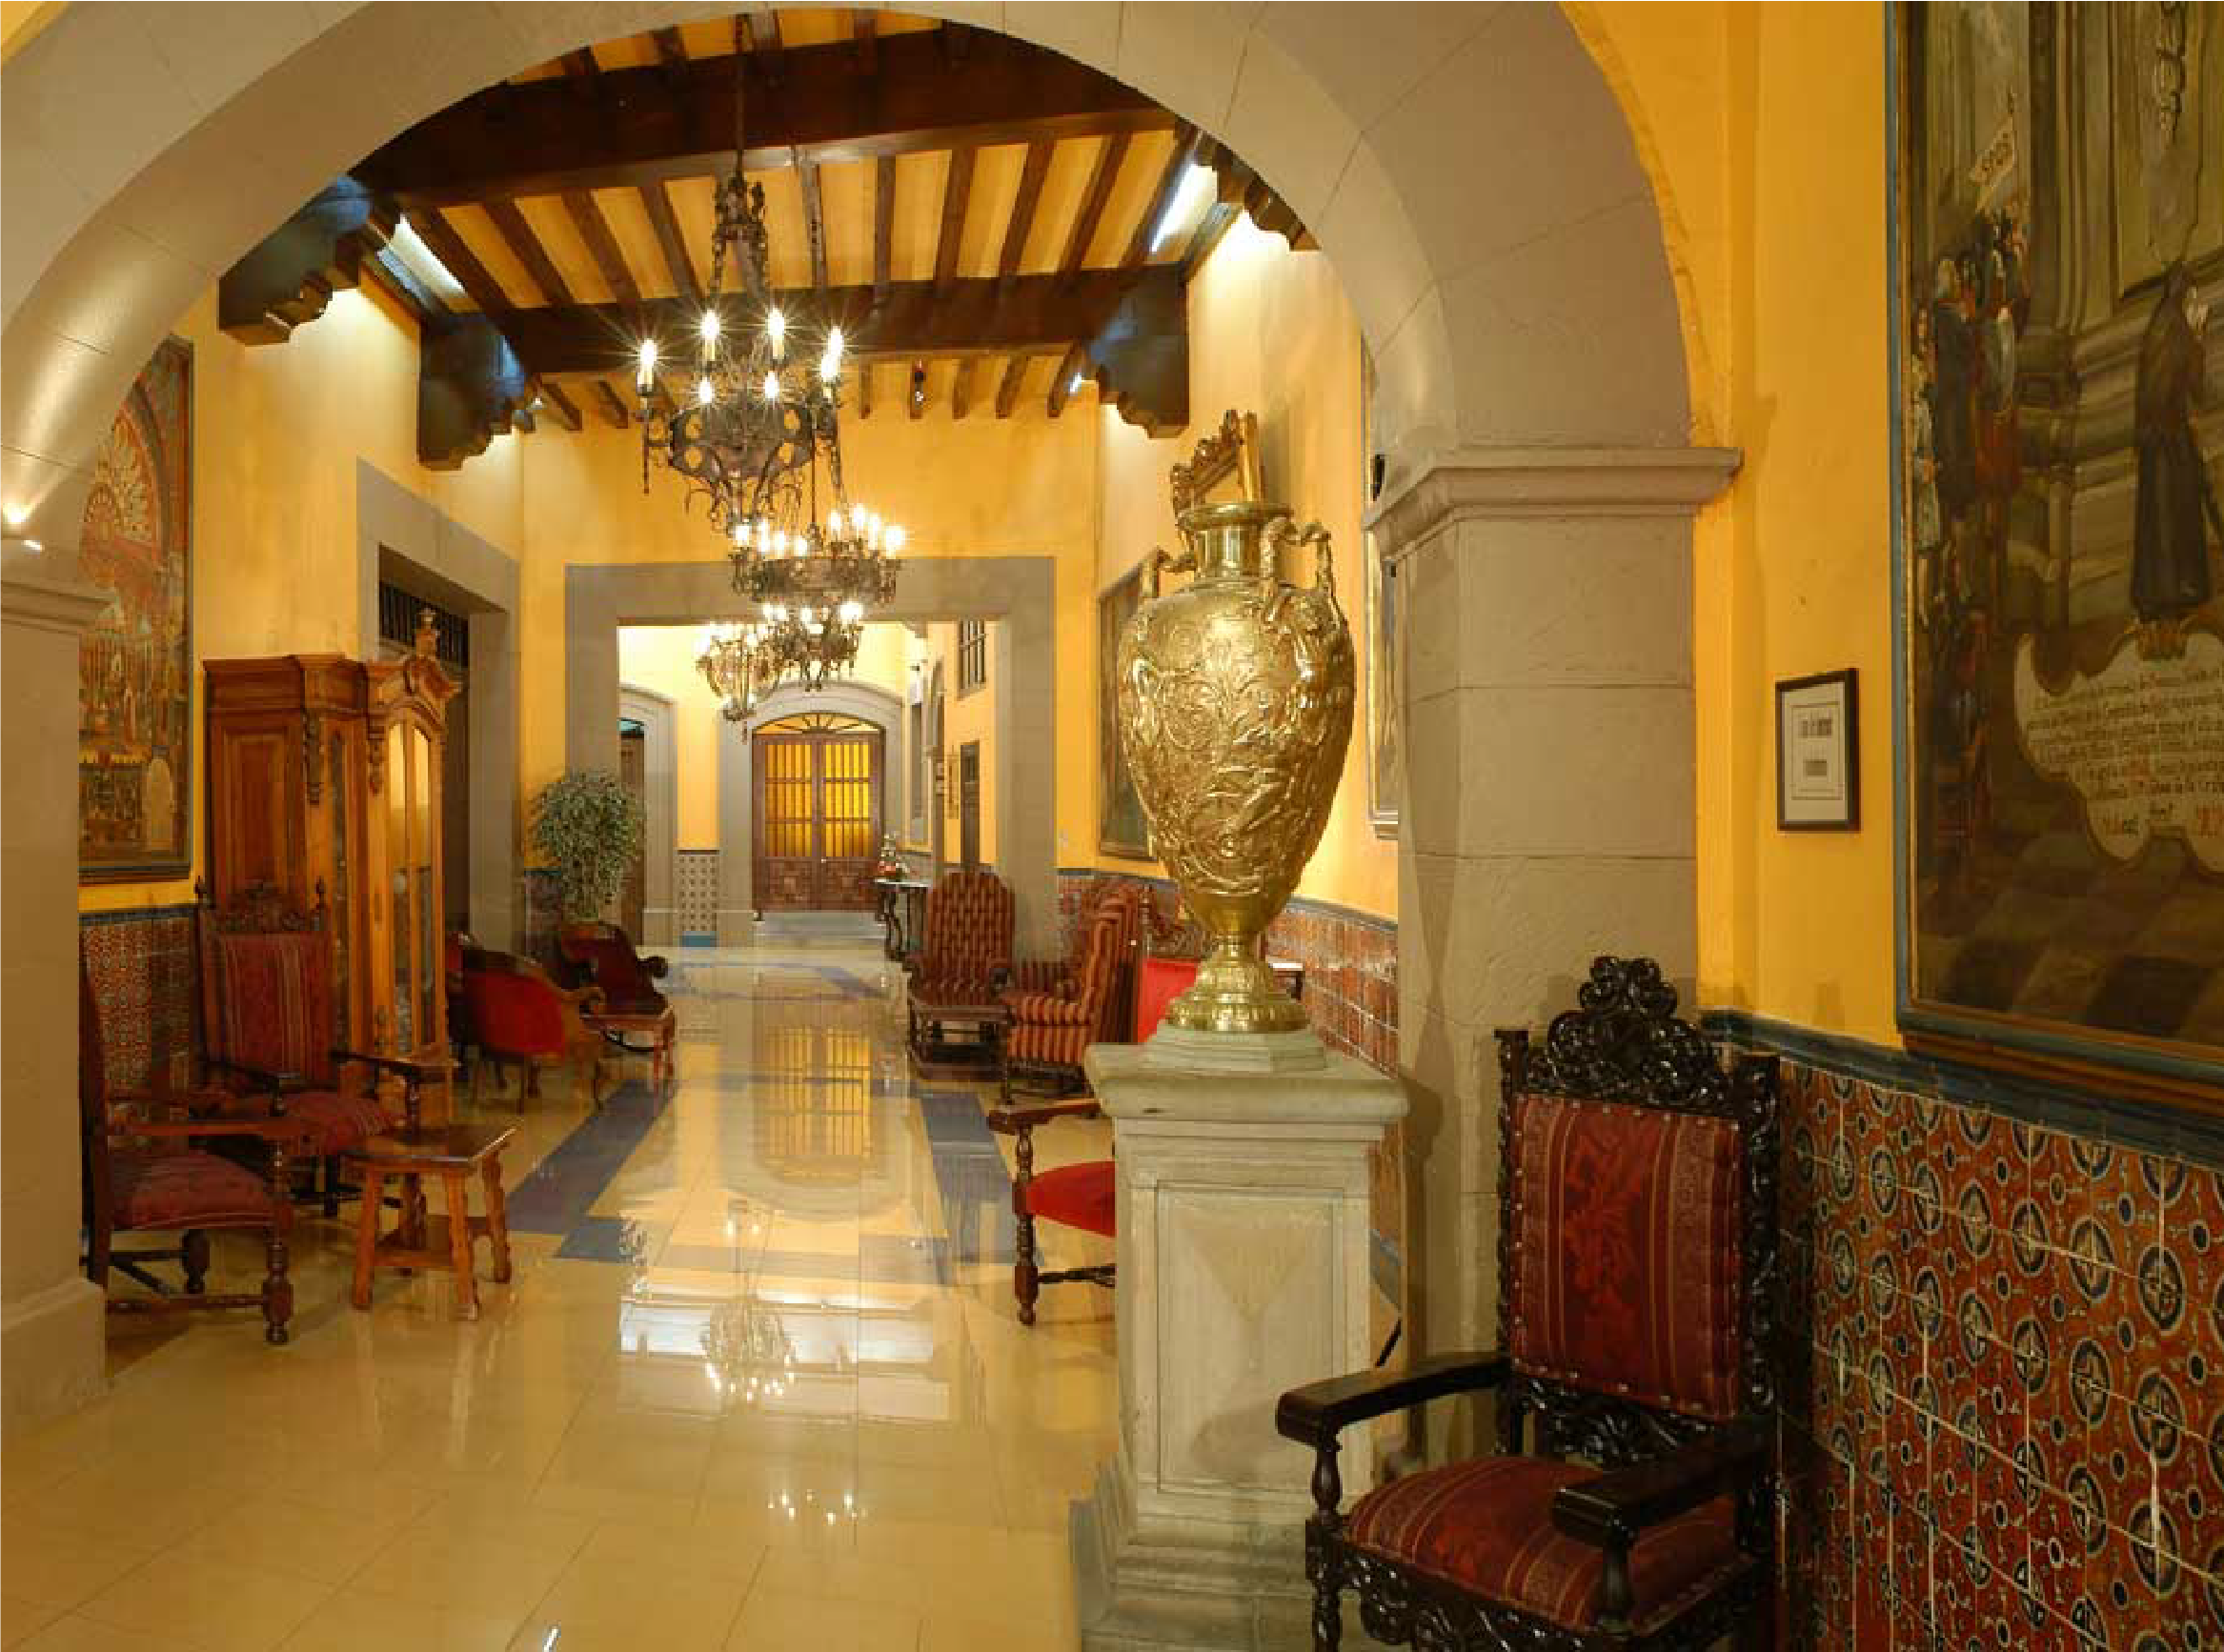 hotel Posada Santa Fe, Guanajuato - Day 14. March 1 Morning depart to Guanajuato. We do an off-trails city tour panoramic drive, El Pipila monument (savior of Guanajuato), dam of la olla, visit of the mine 'el nopal' (specialized guide and helmet provided), the house of the aunt Aura (house of fear), the ex-hacienda del cochero (museum of the inquisition) and finally the San Cayetano temple, Mummies. Rest of the day walking city tour. O/N Guanajuato.